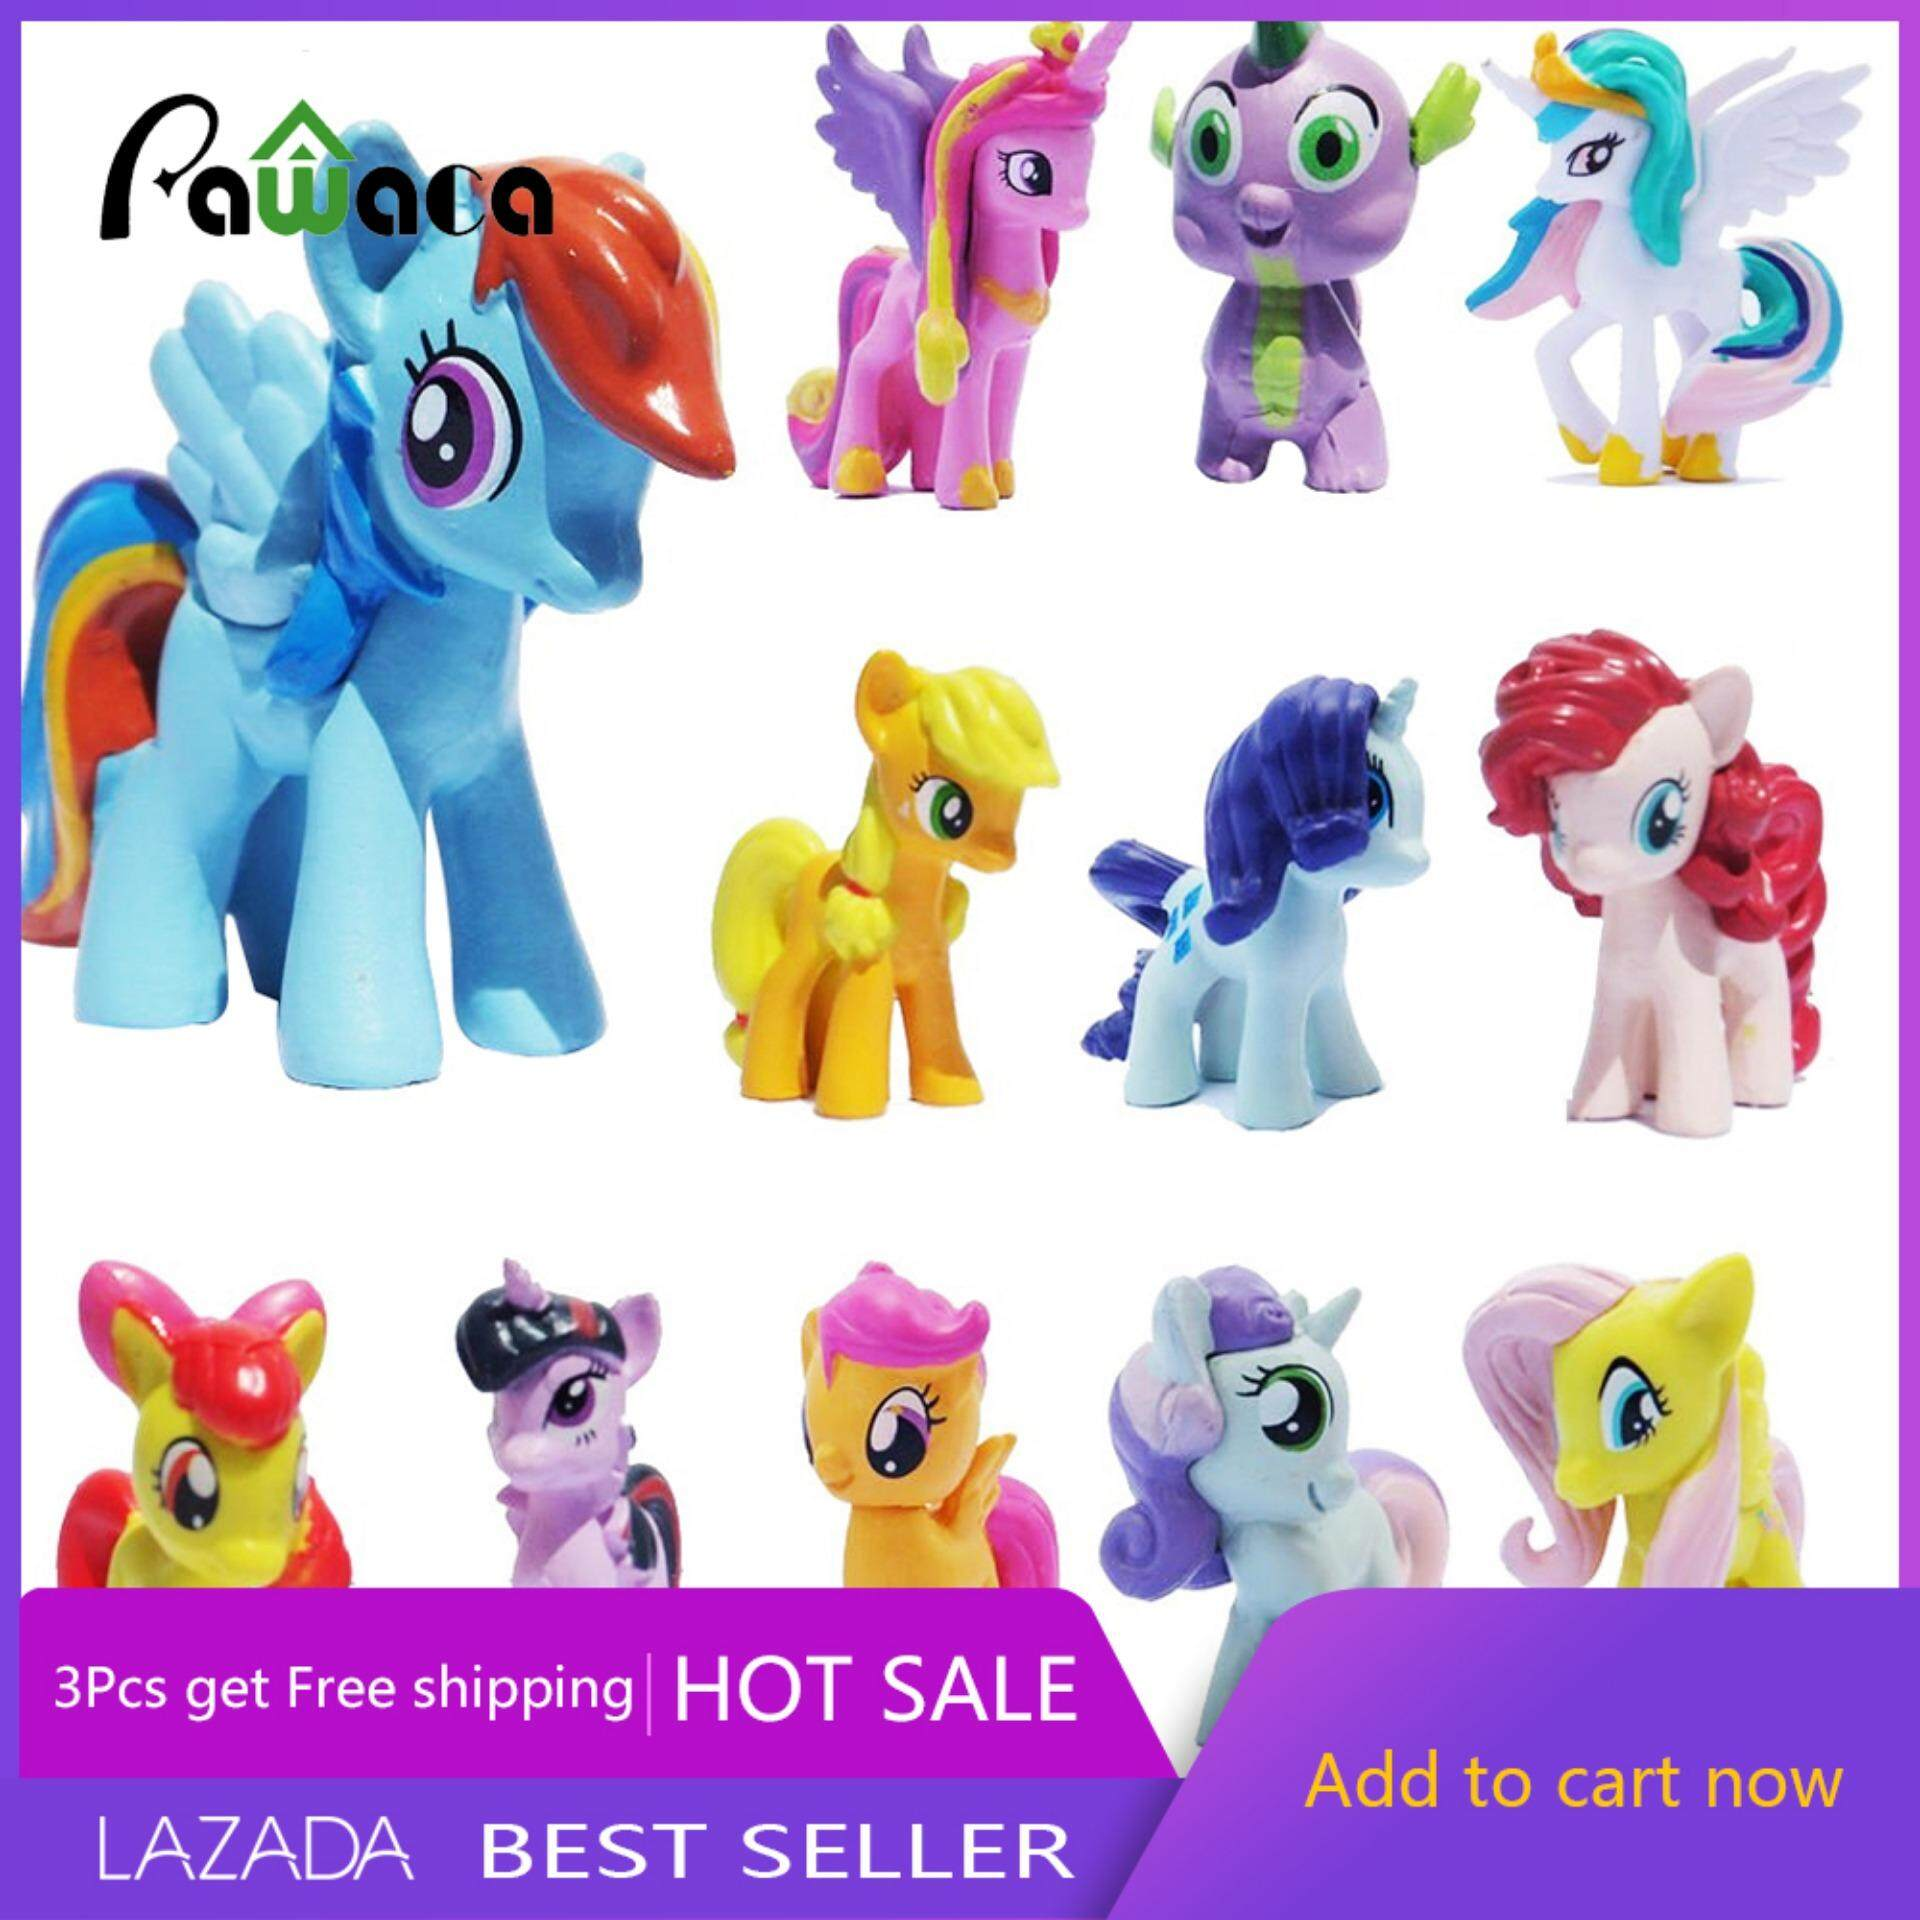 [FREE SHIPPING]Pawaca Cool Baby MINI Dolls Lot 12Pcs My Little Pony Friendship Is Magic Cake Figure Kids Toy - Intl